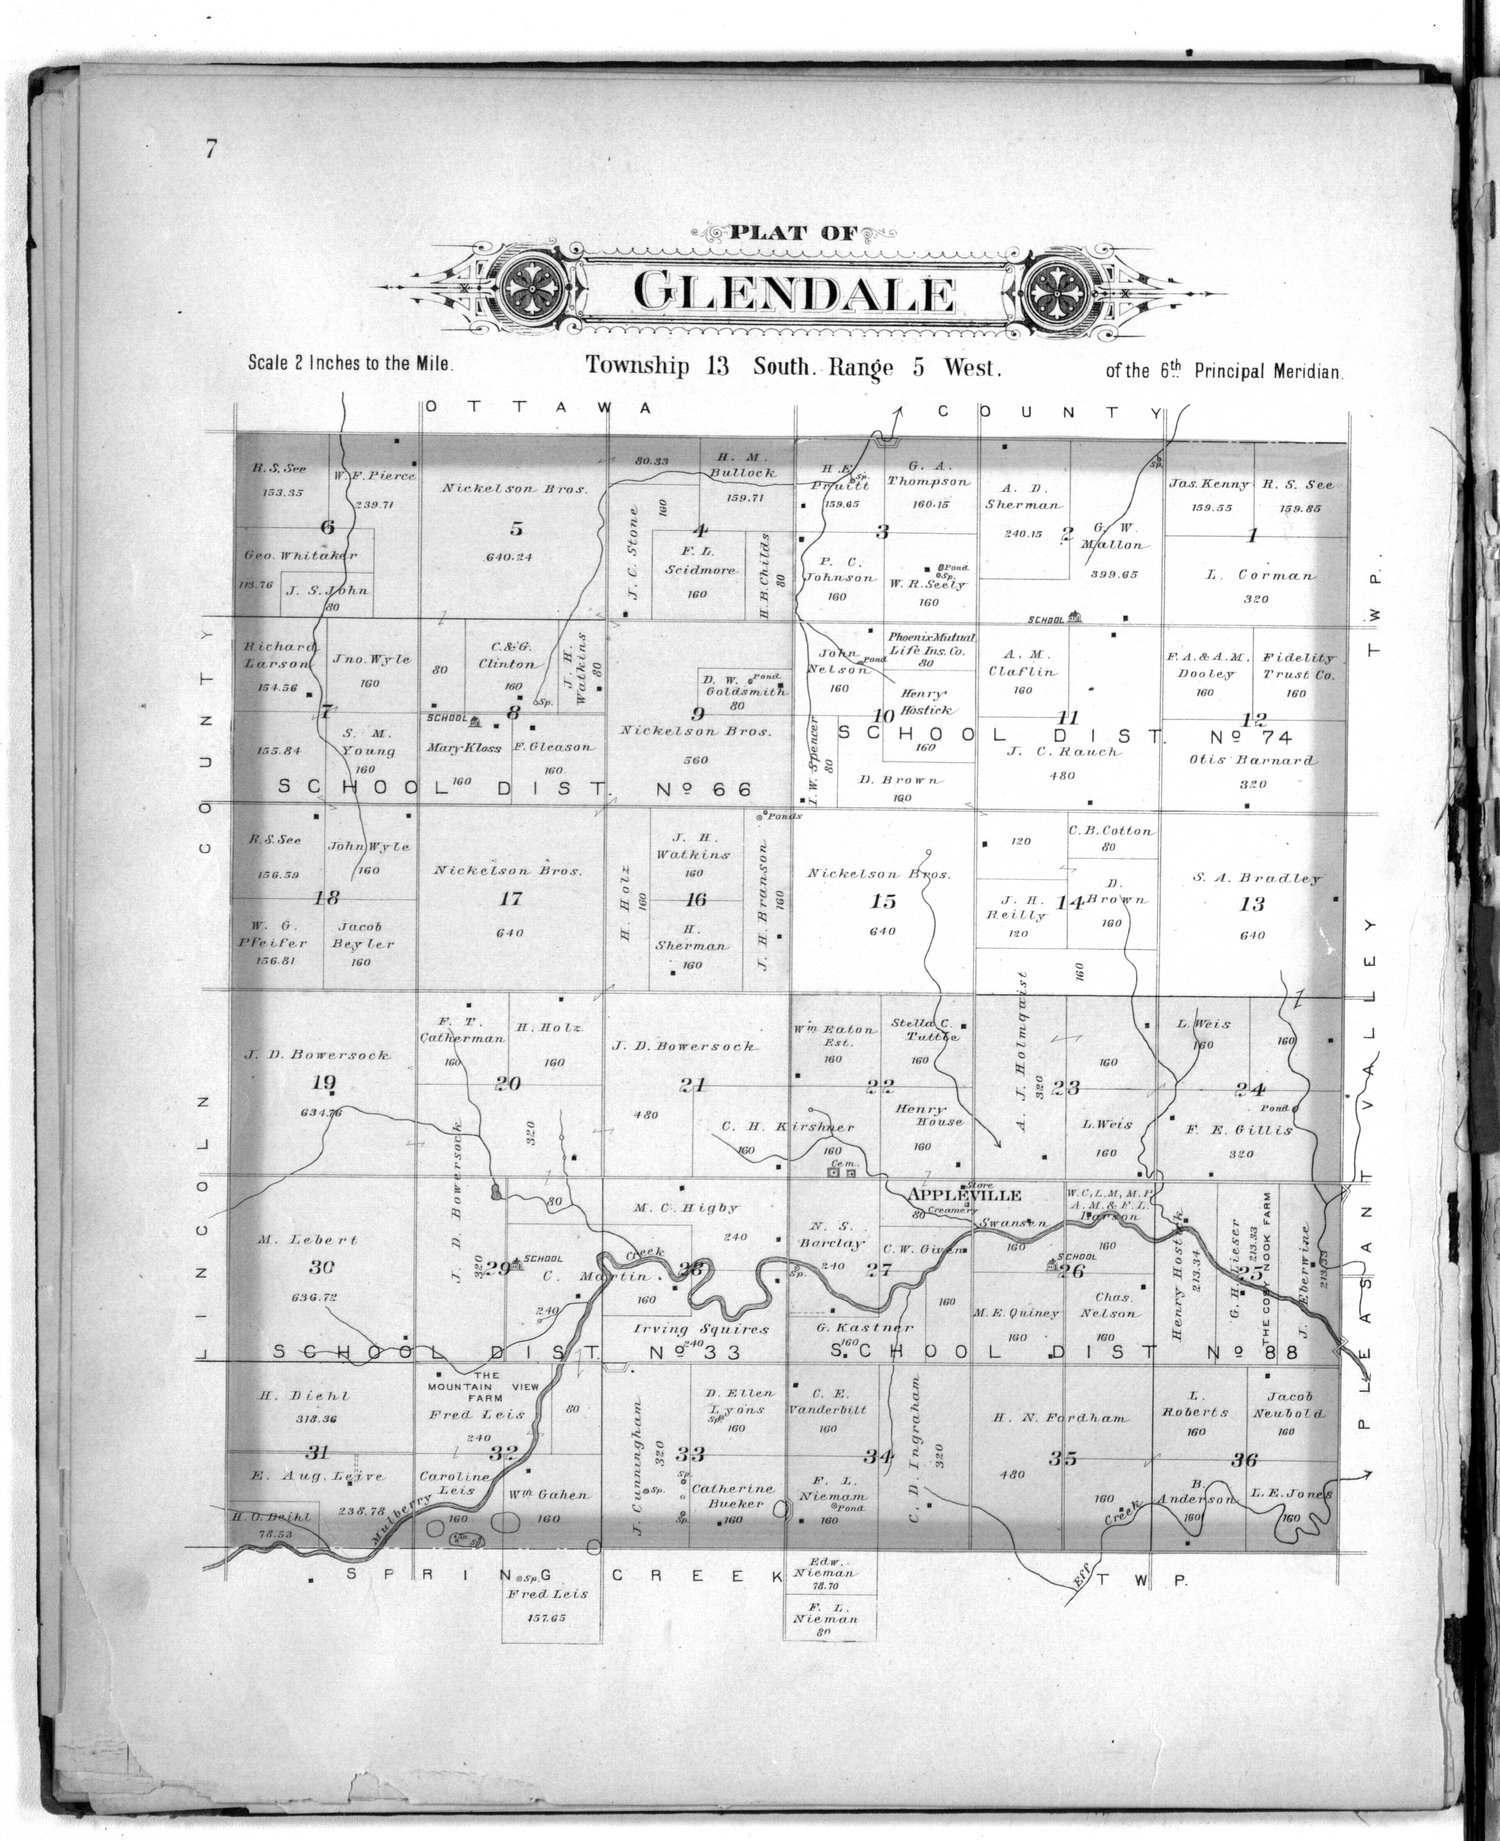 Plat book of Saline County, Kansas - 7